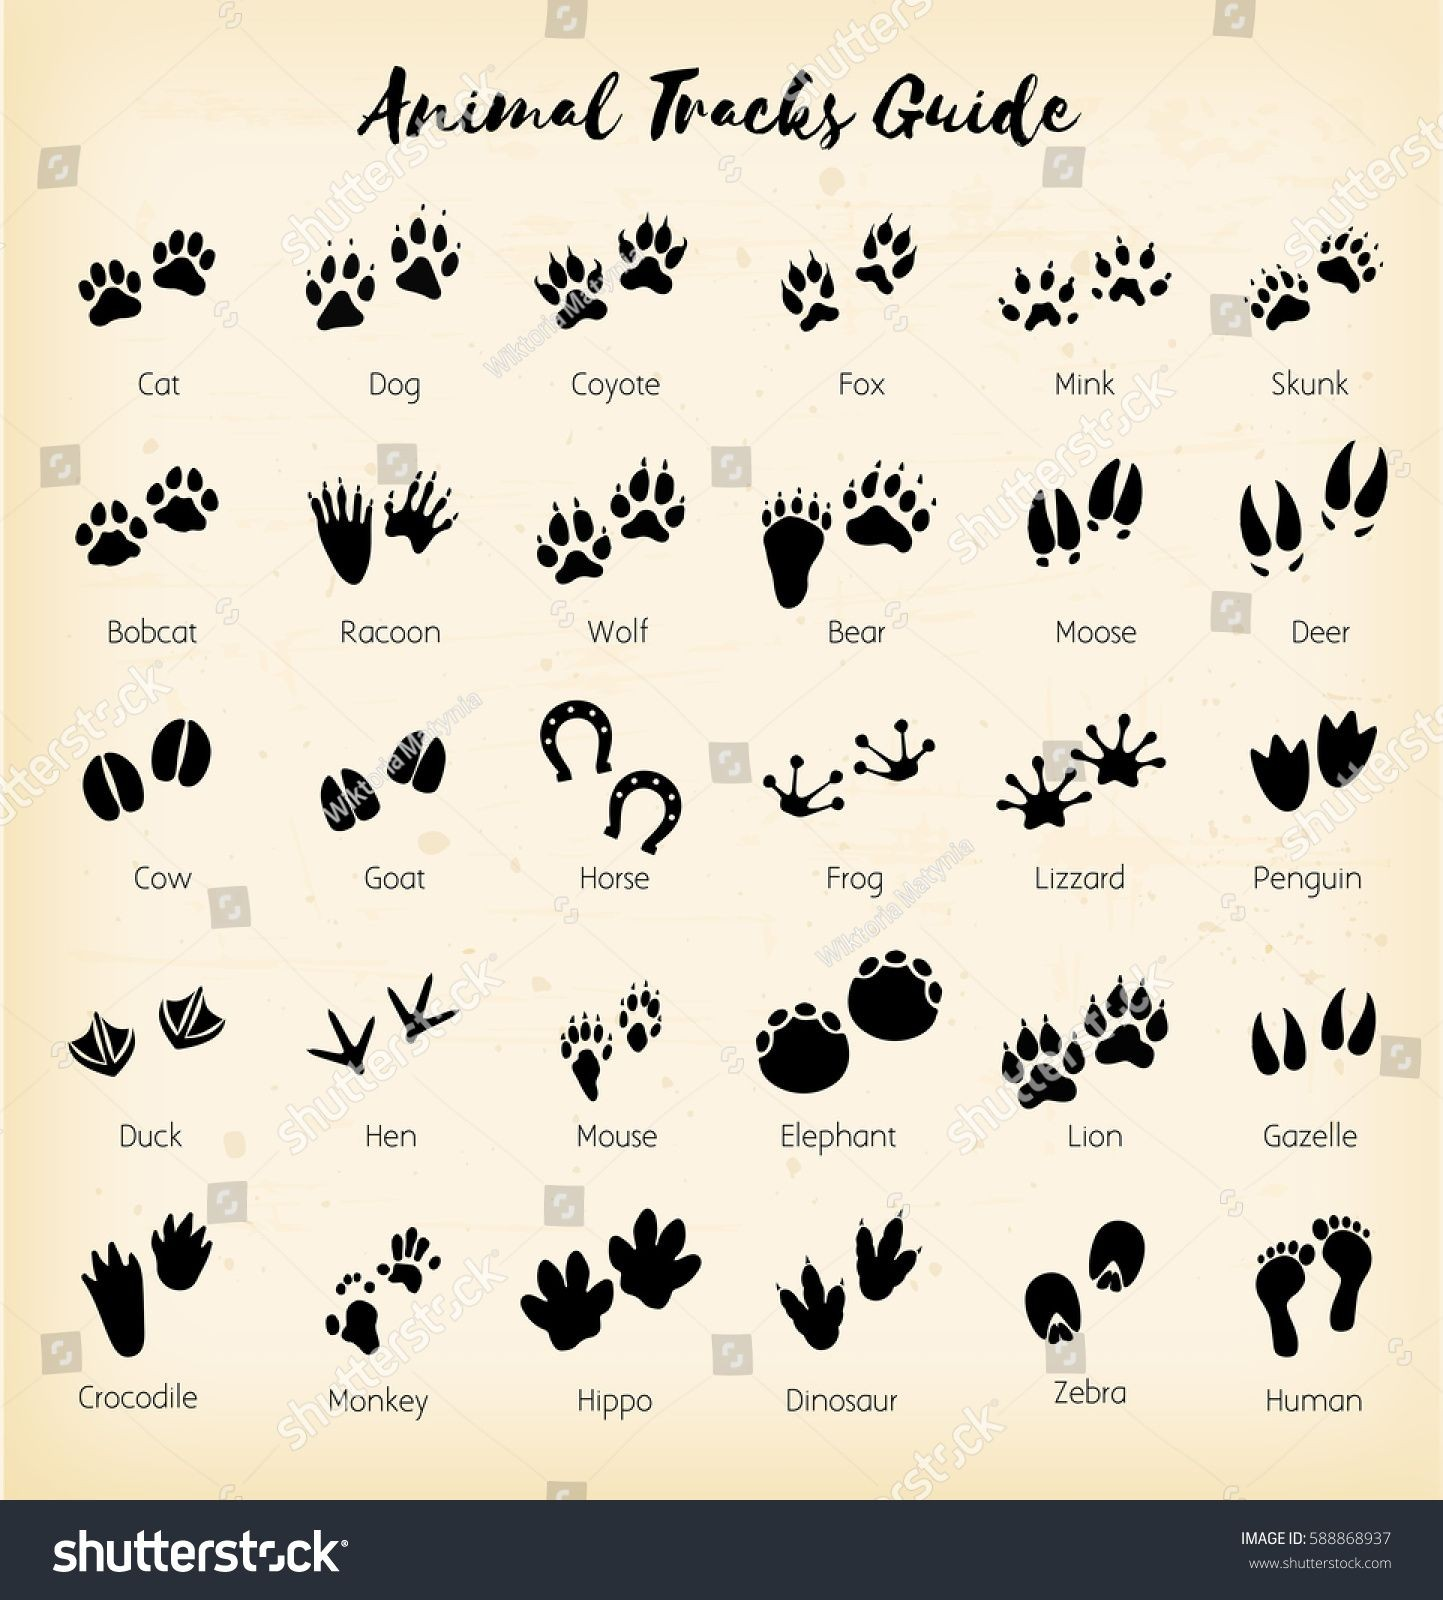 1443x1600 How To Draw Leopard Print New Animal Tracks Foot Print Guide